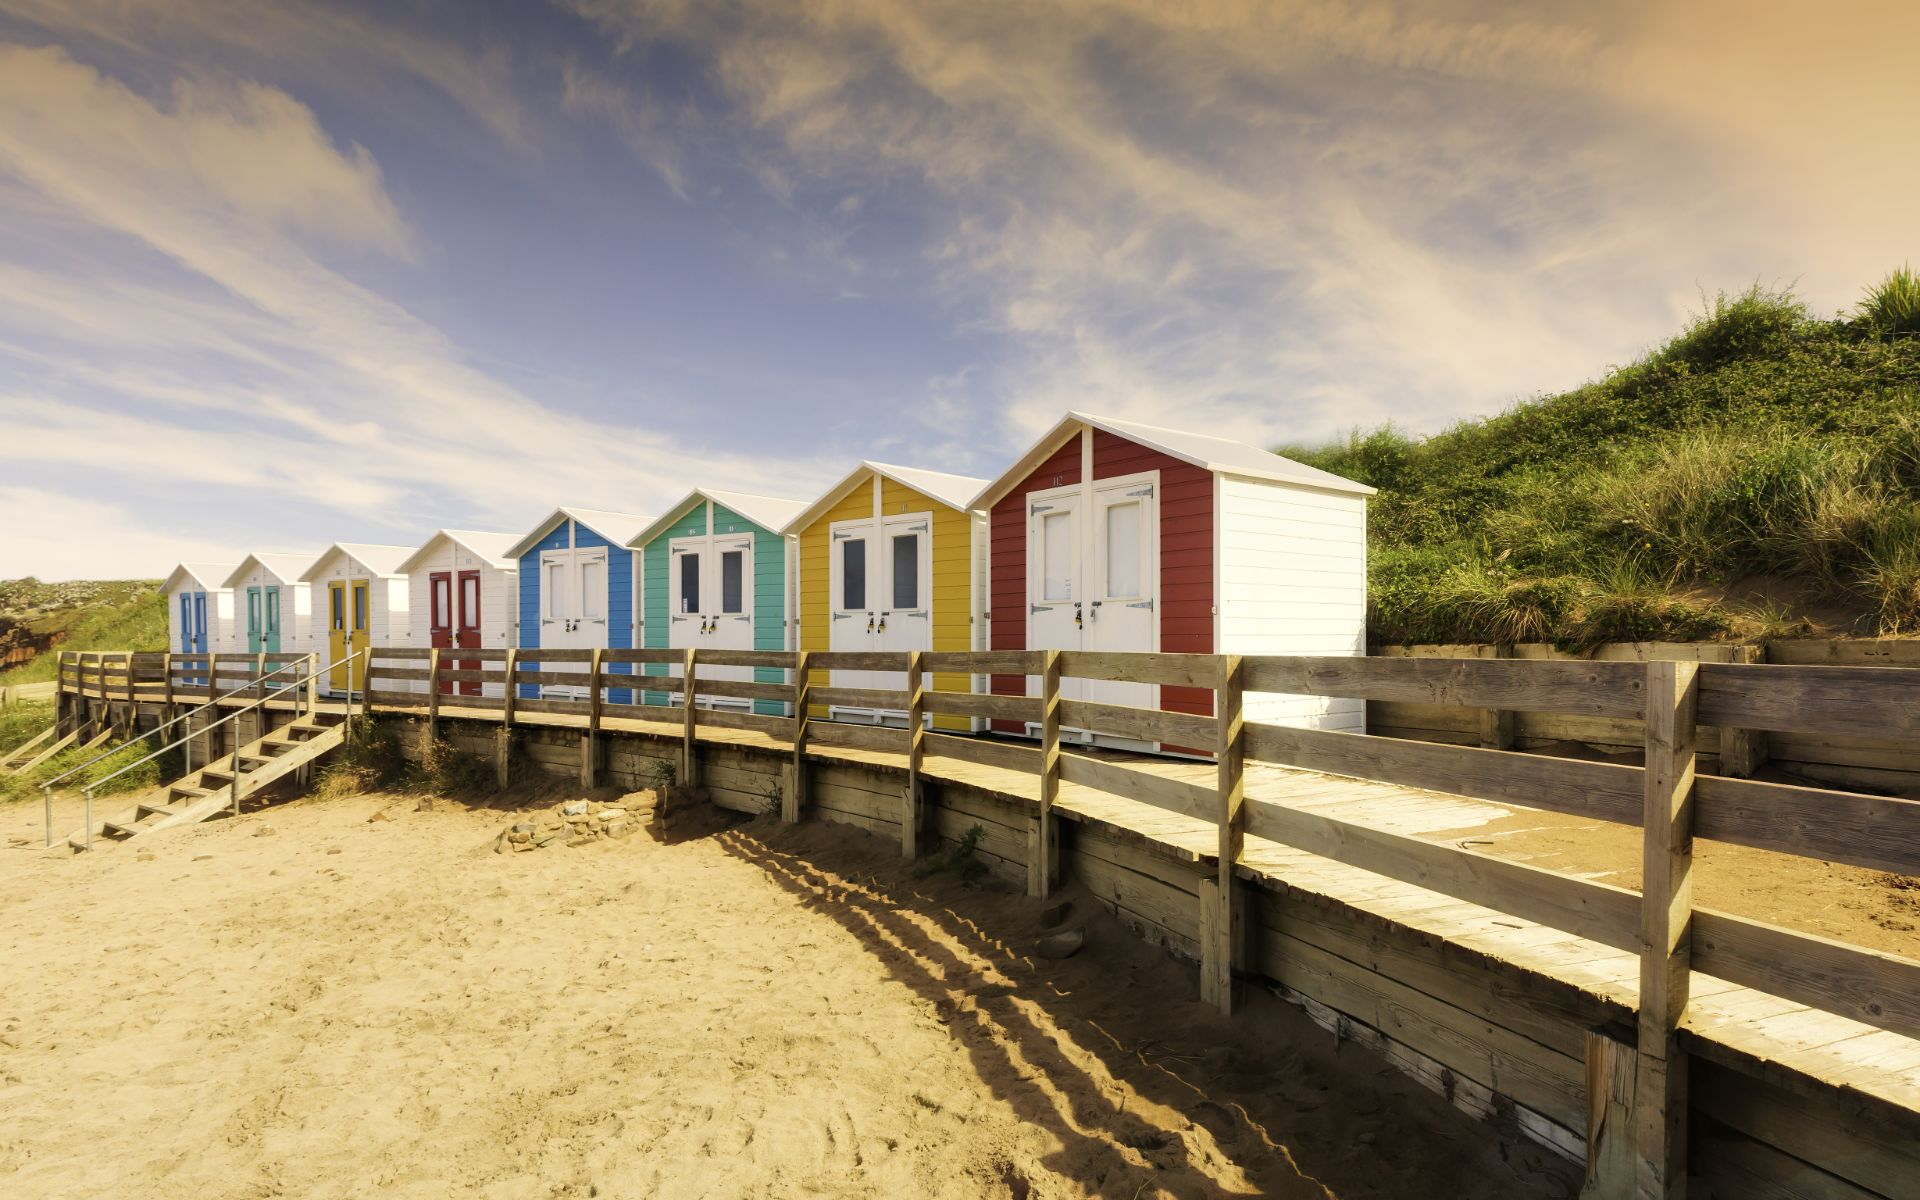 Colourful beach huts all in a row at Summerleaze Beach in Bude, Cornwall